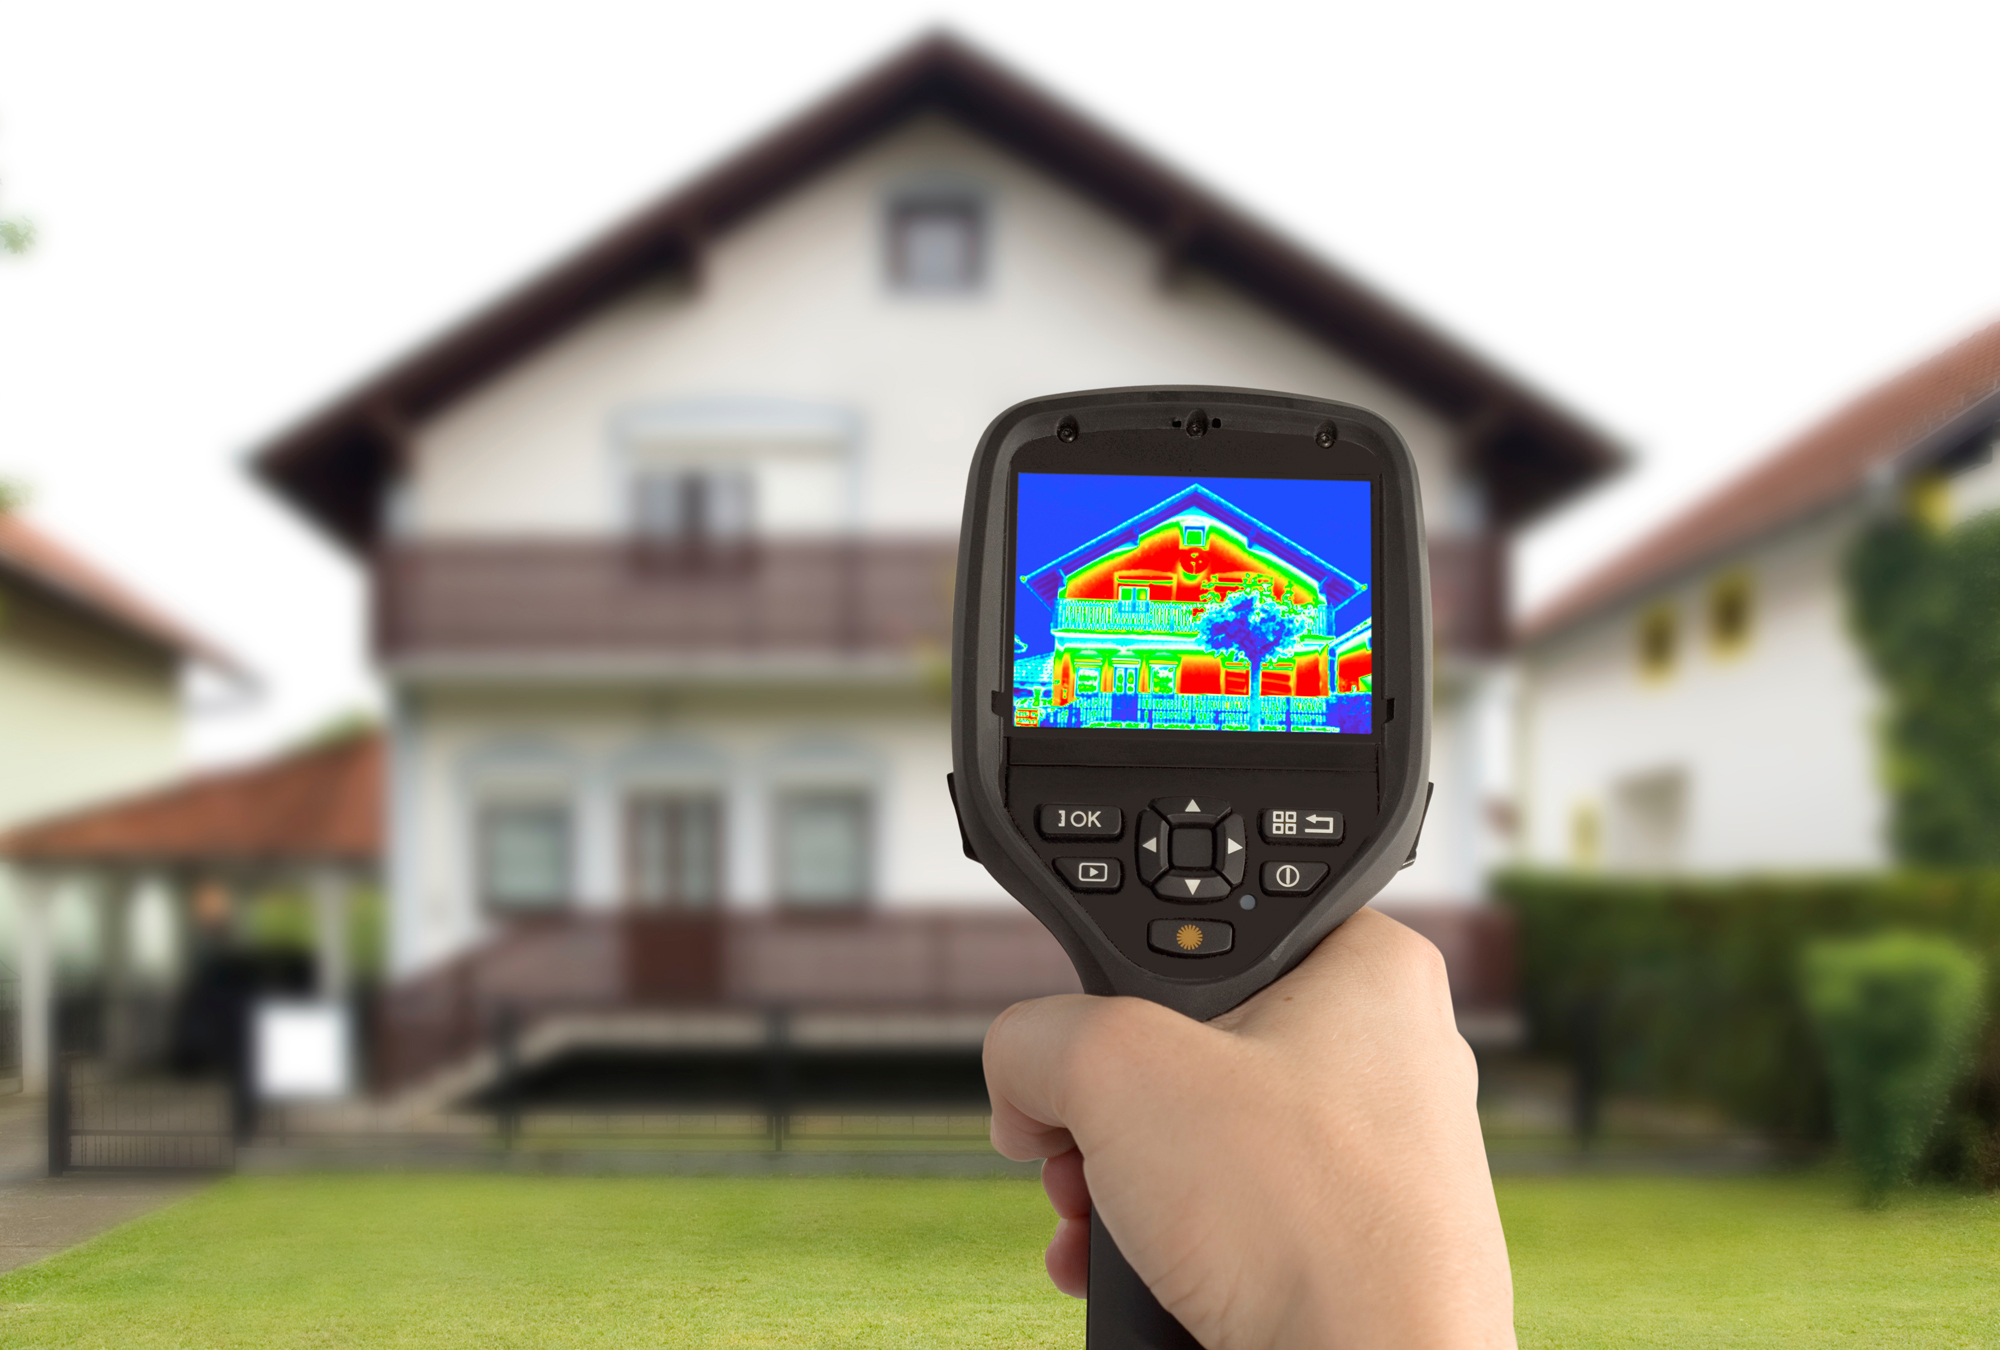 Hand holds up infrared sensor in front of house